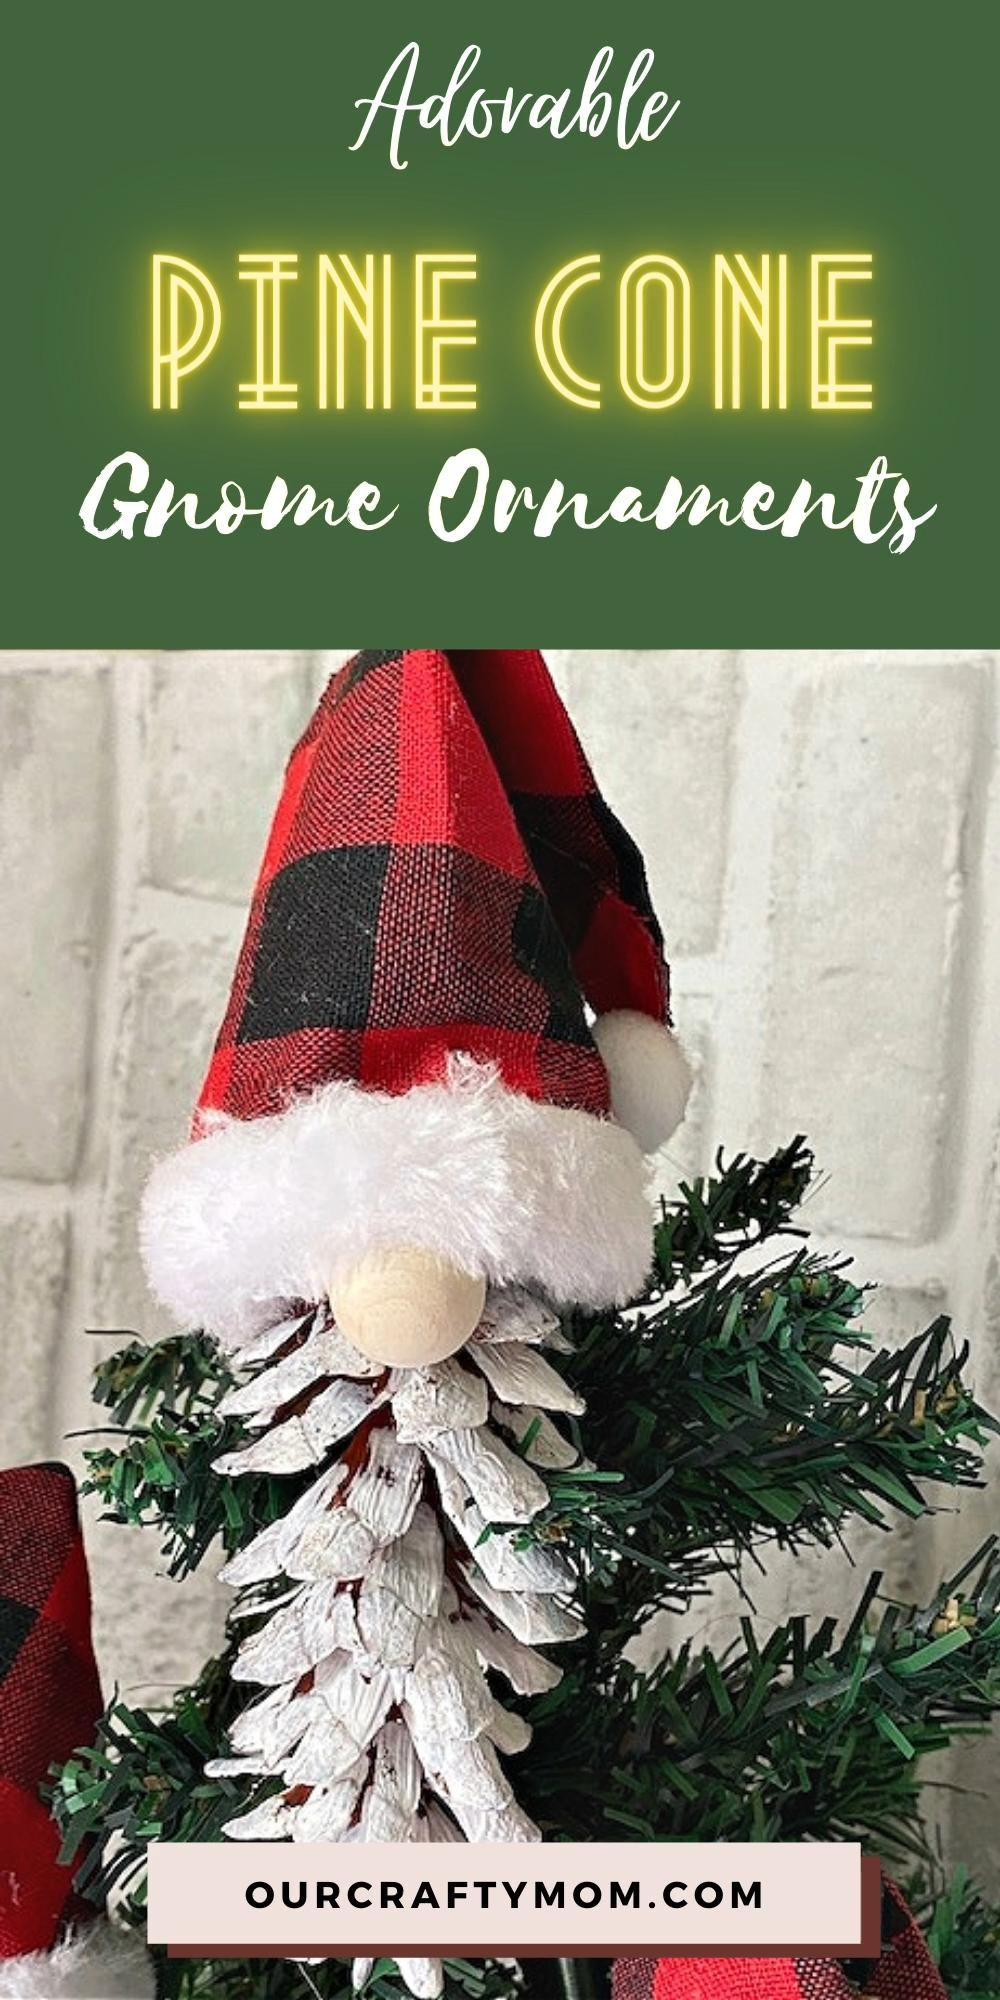 How To Make Adorable Christmas Gnome Pine Cone Ornaments Video Video Christmas Crafts For Gifts Christmas Ornaments Pine Cone Crafts